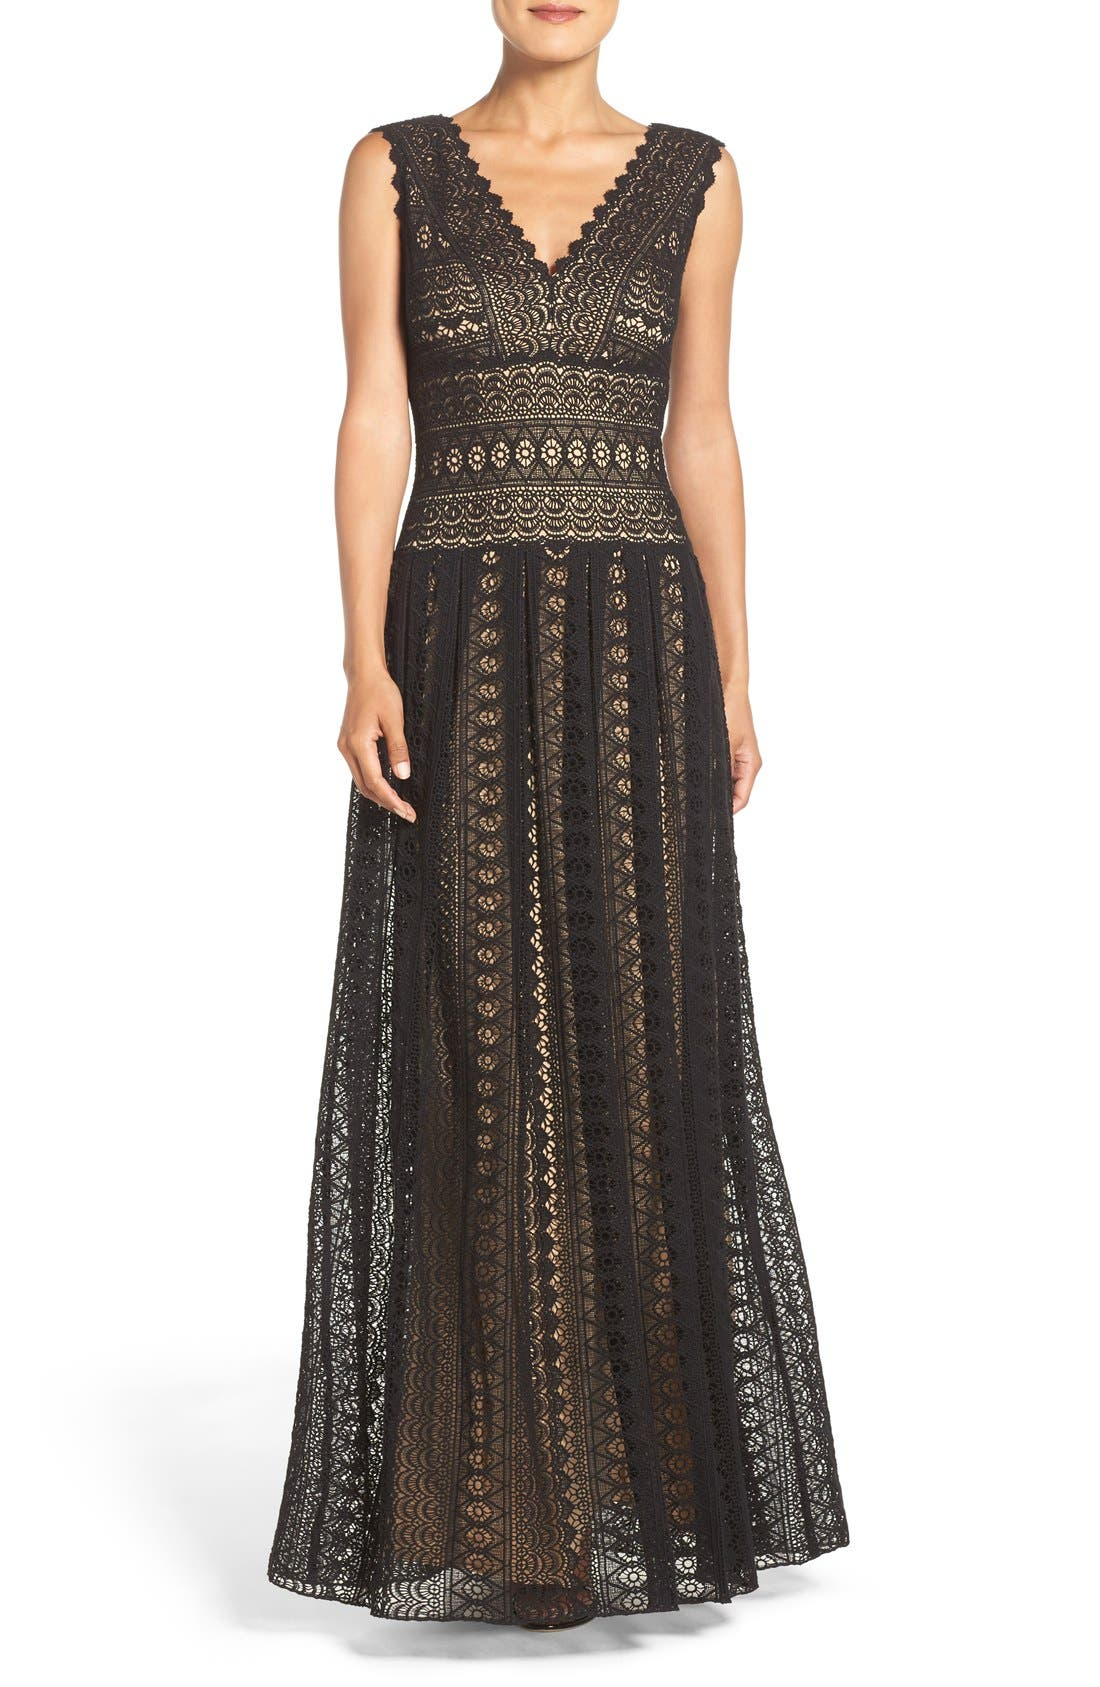 Alternate Image 1 Selected - Tadashi Shoji Crochet Lace Fit & Flare Gown